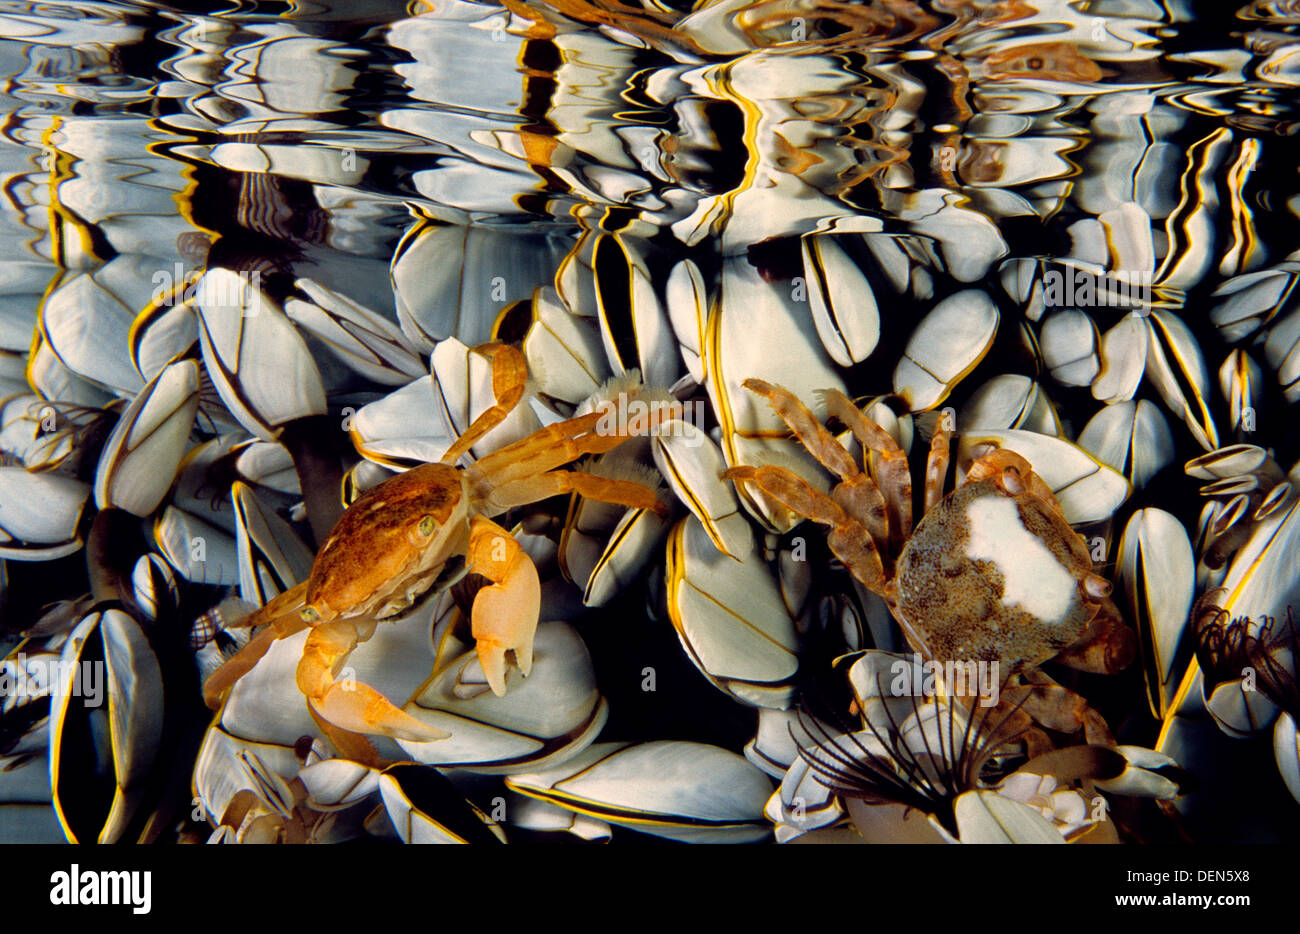 Oceanic crab (Pinoferes pinofrese) in the middle of Gooseneck barnacle (Lepas anatifera), Atlantic Ocean, Azores, Portugal - Stock Image